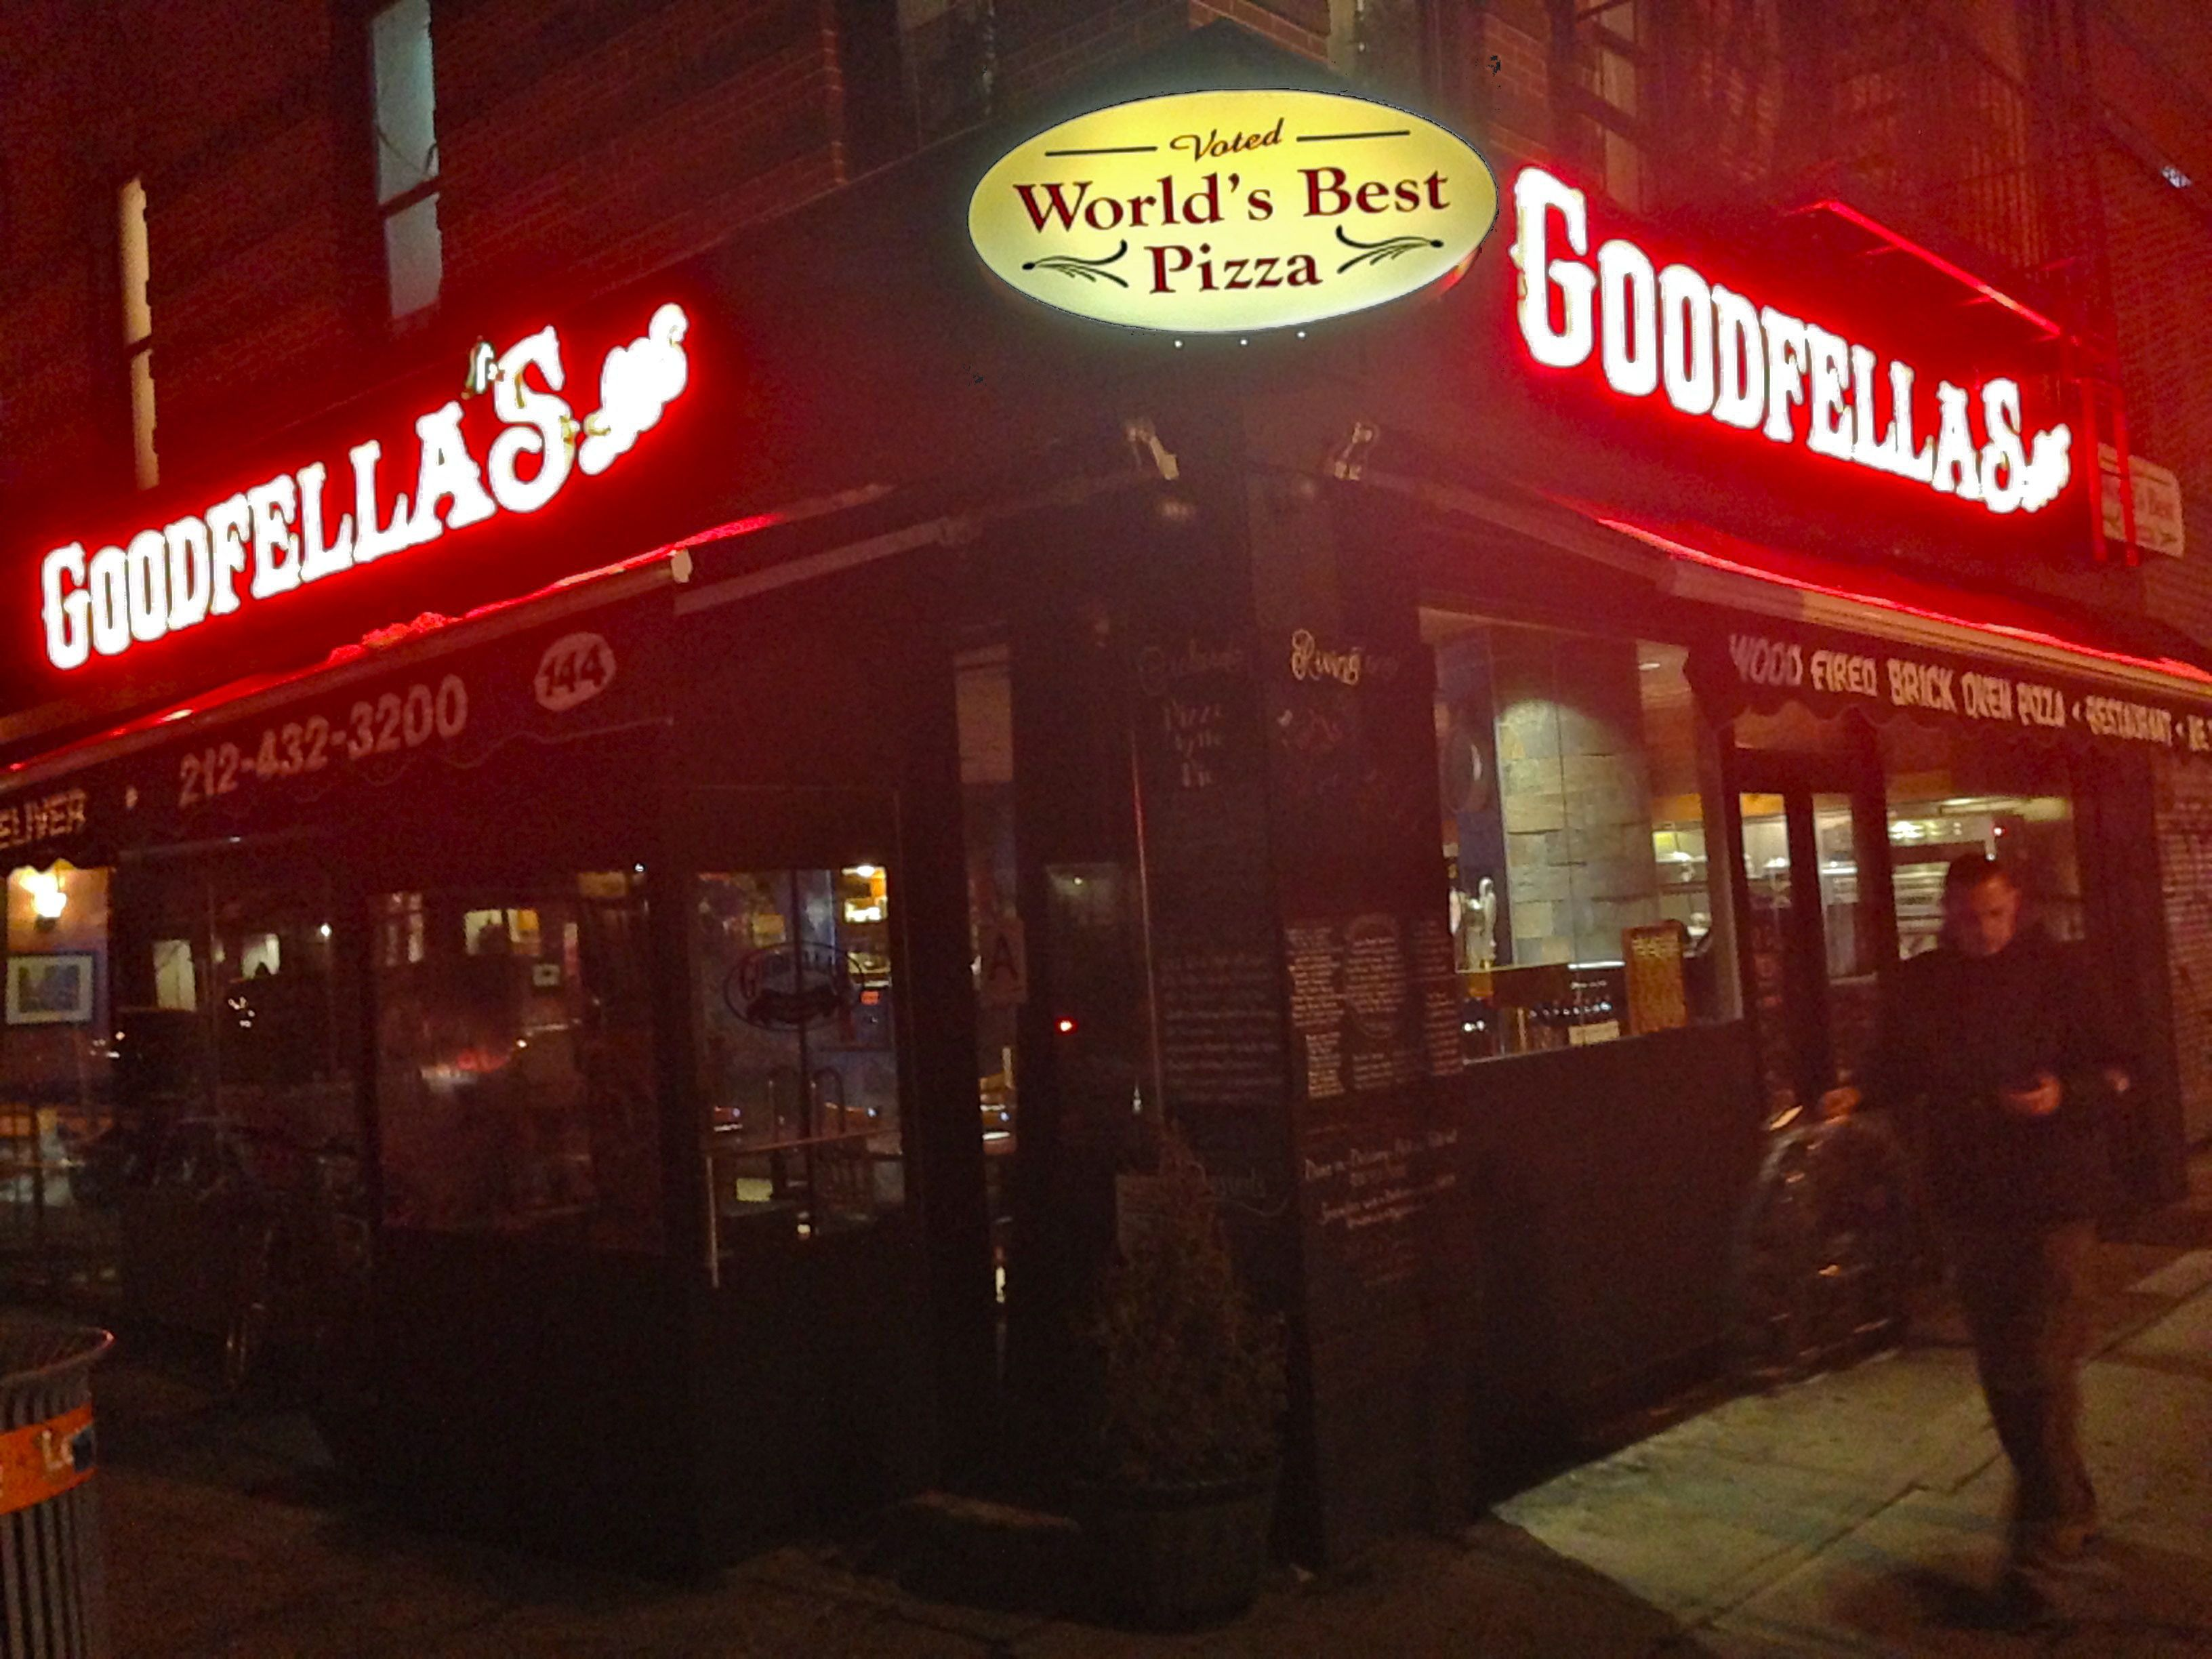 Goodfellas-exterior-delivery-restaurant-pizza